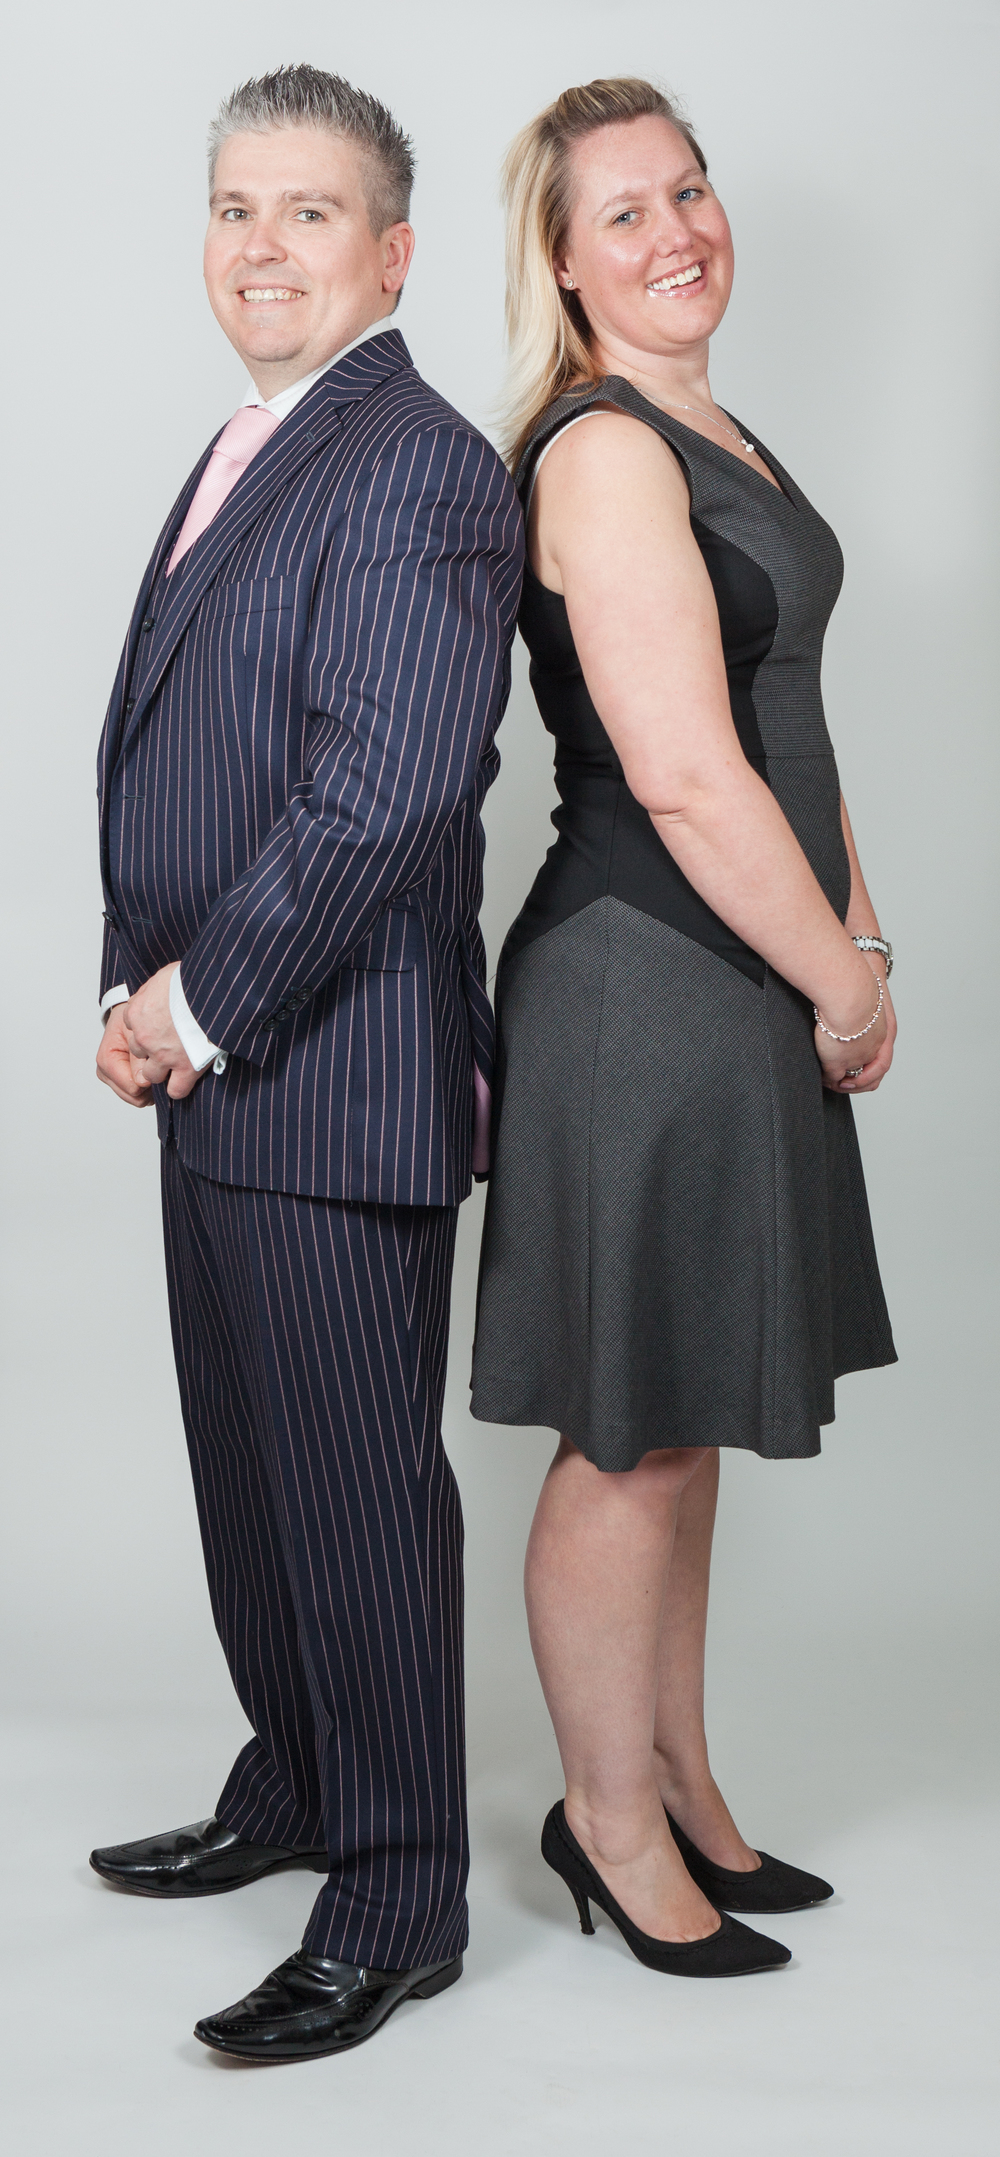 Jo and Dave - Back to back - suits_SimbocLtd_6976.jpg